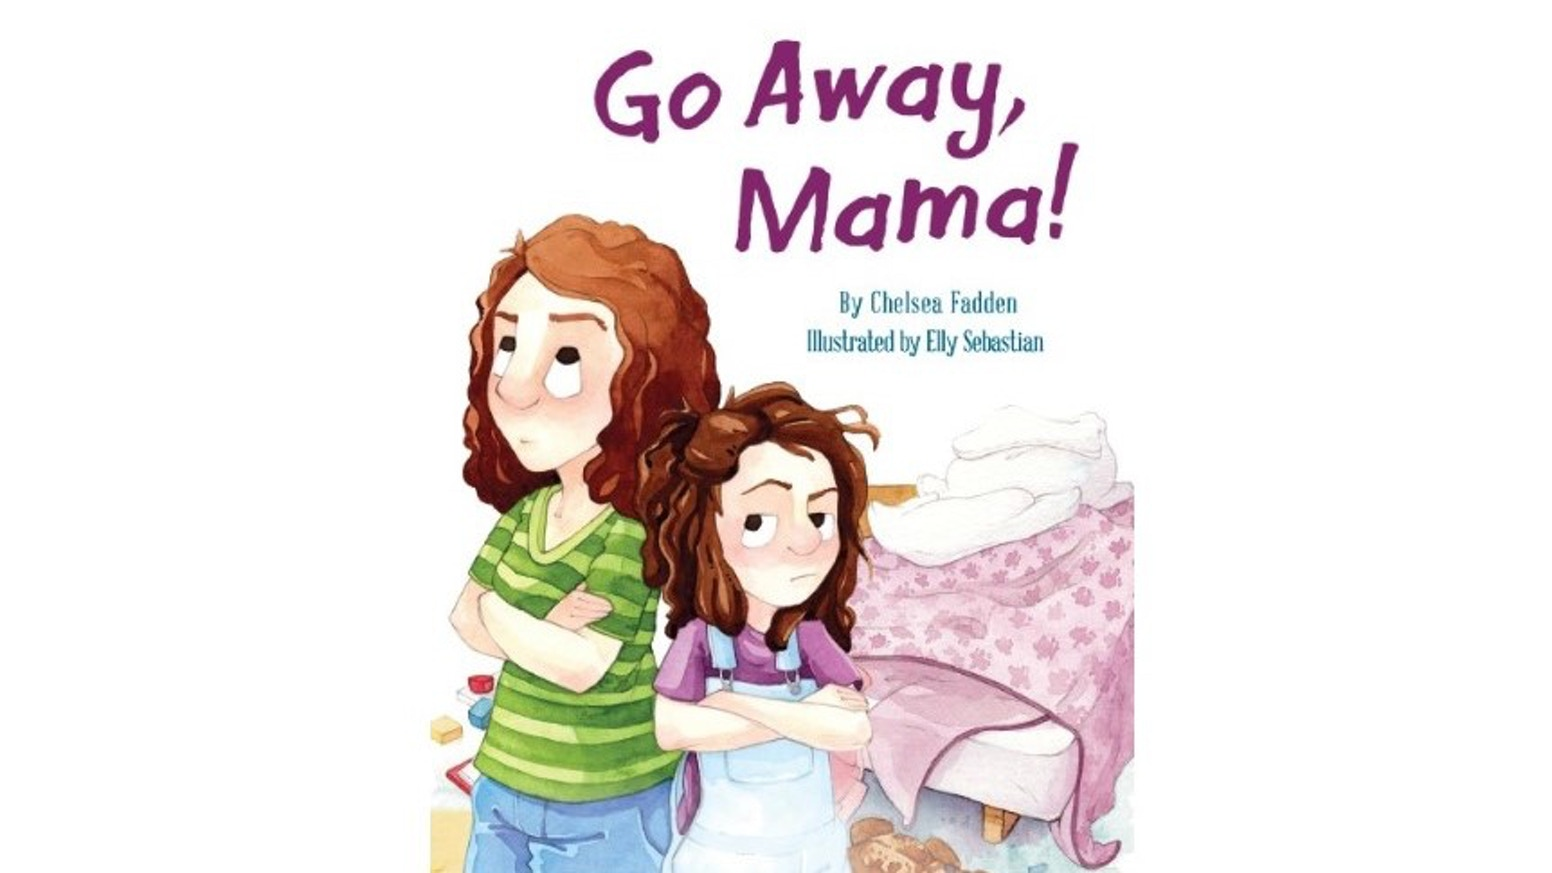 A children's book about a strong-willed girl and her devoted mom who navigate life's milestones together.